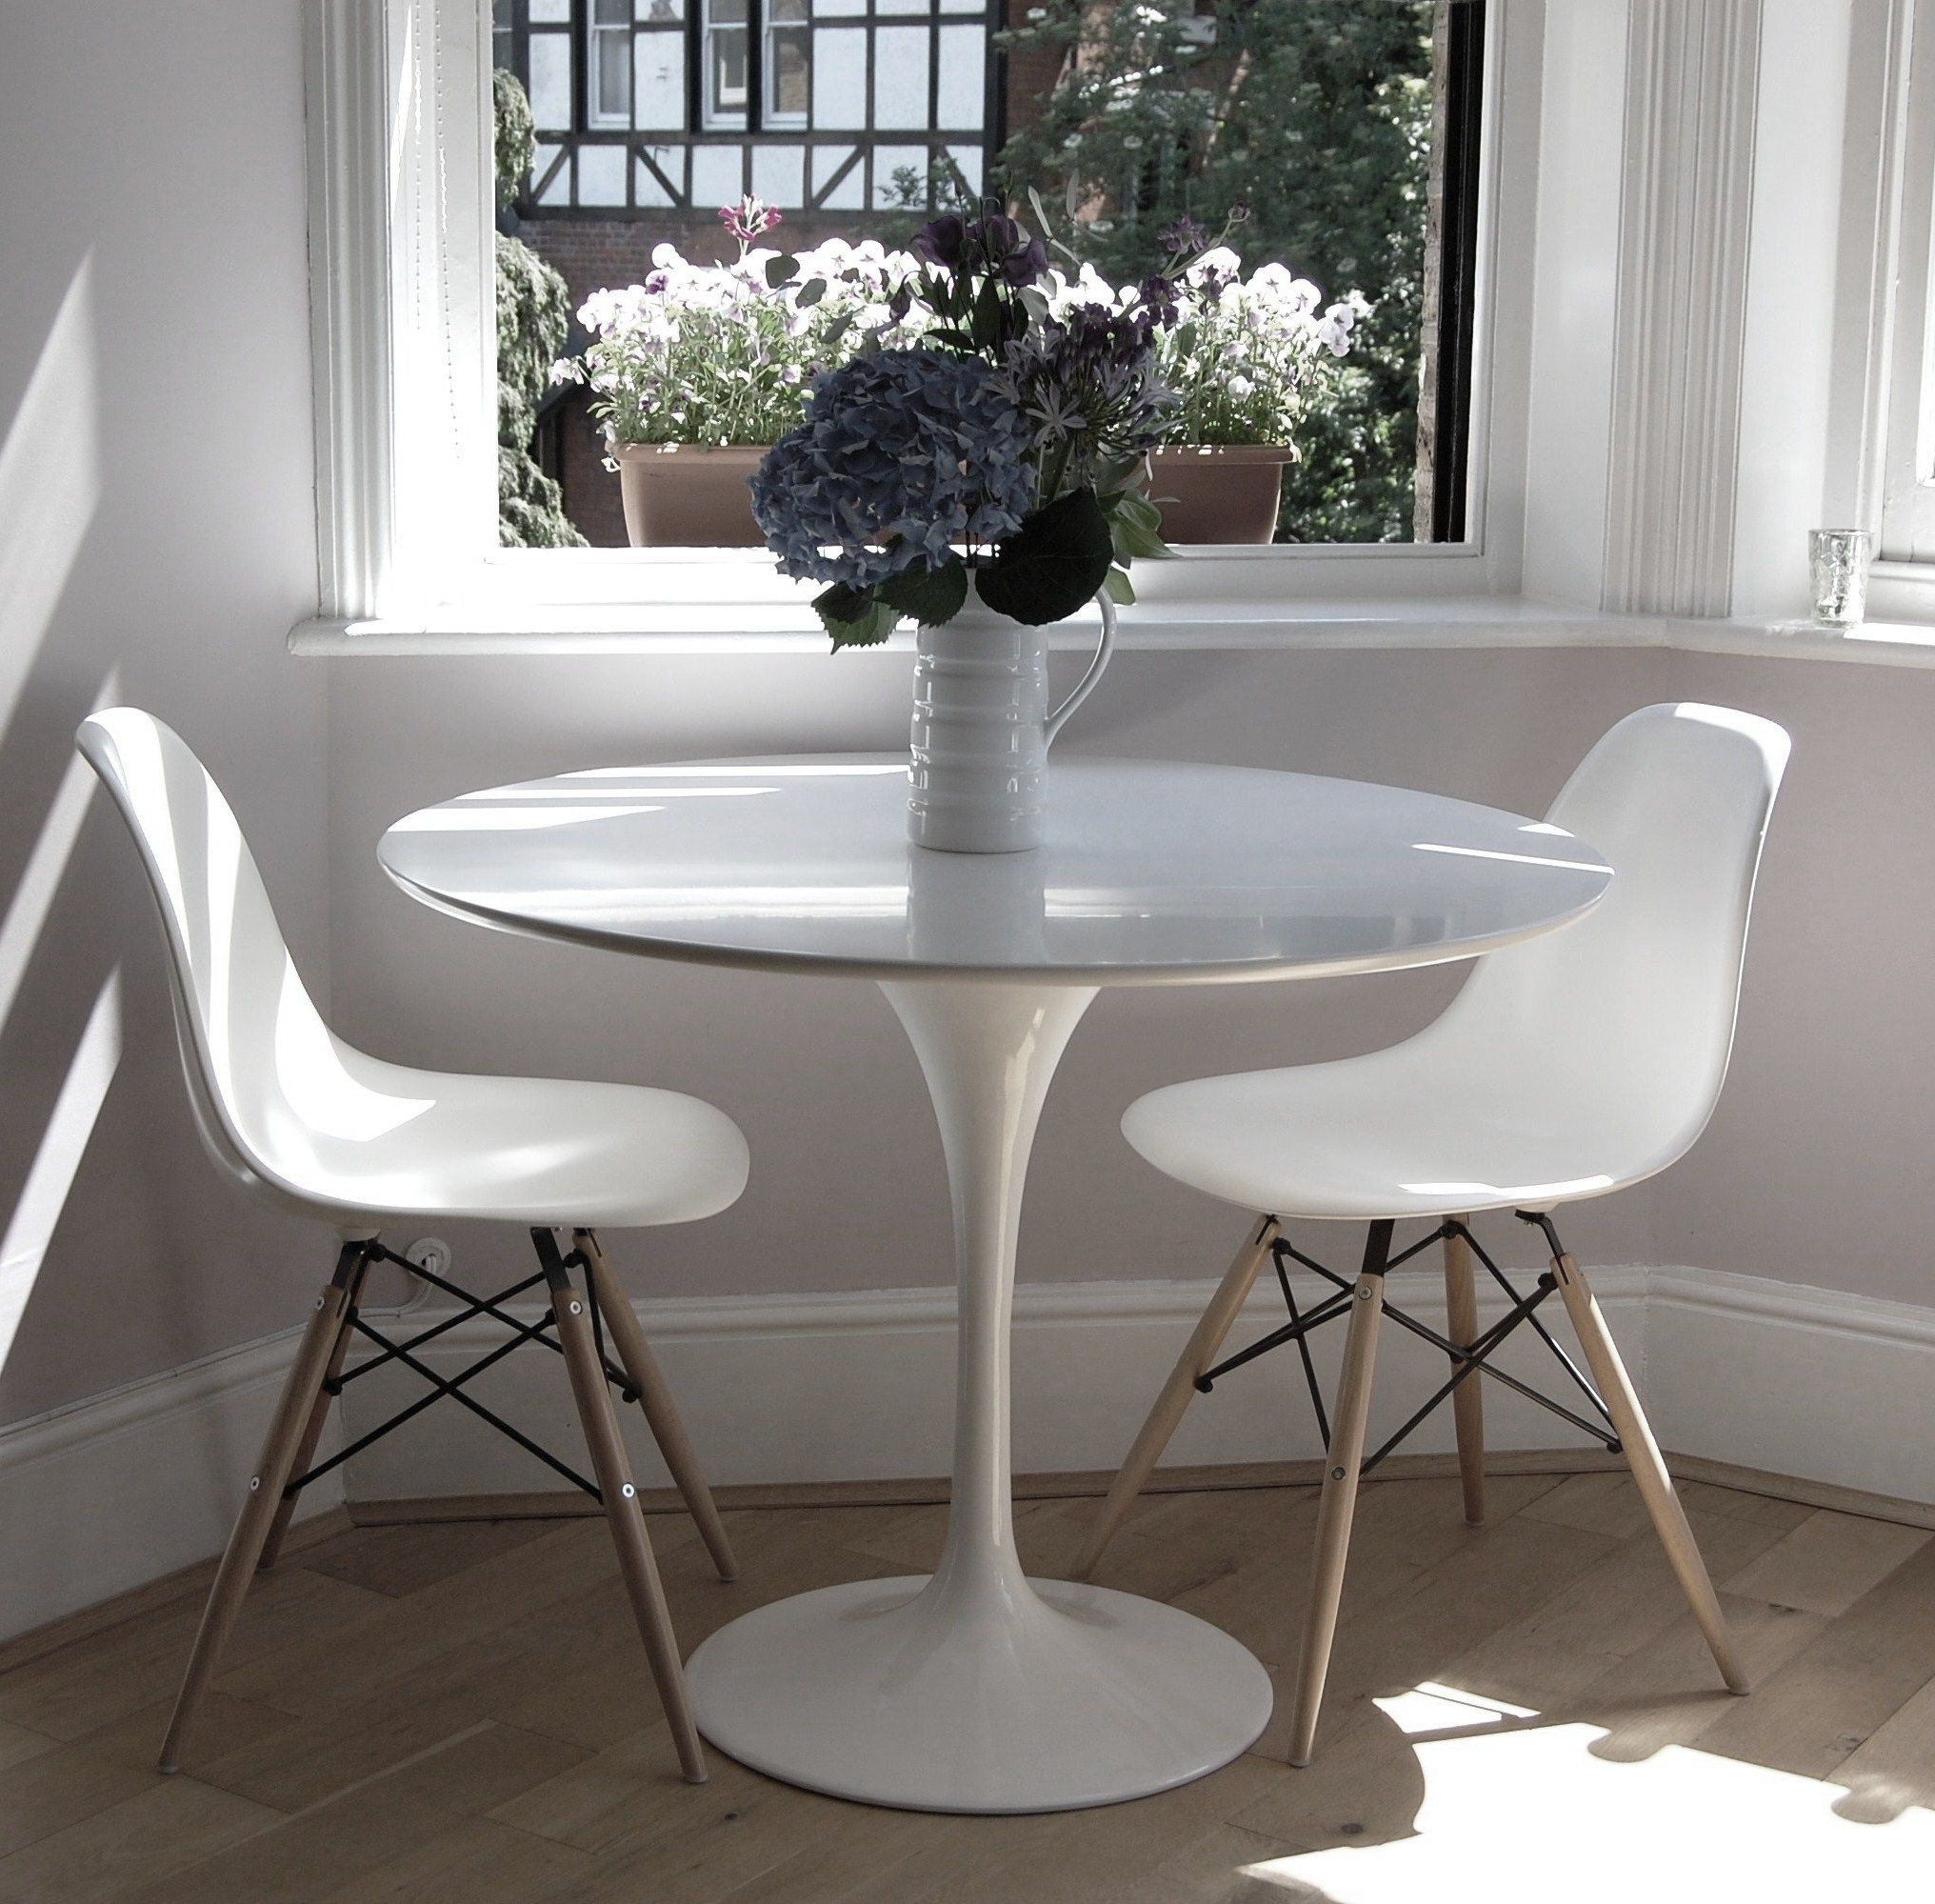 Merveilleux Kitchen Nook  Tulip Table With White Eames Side Chairs Or Ghost Chairs